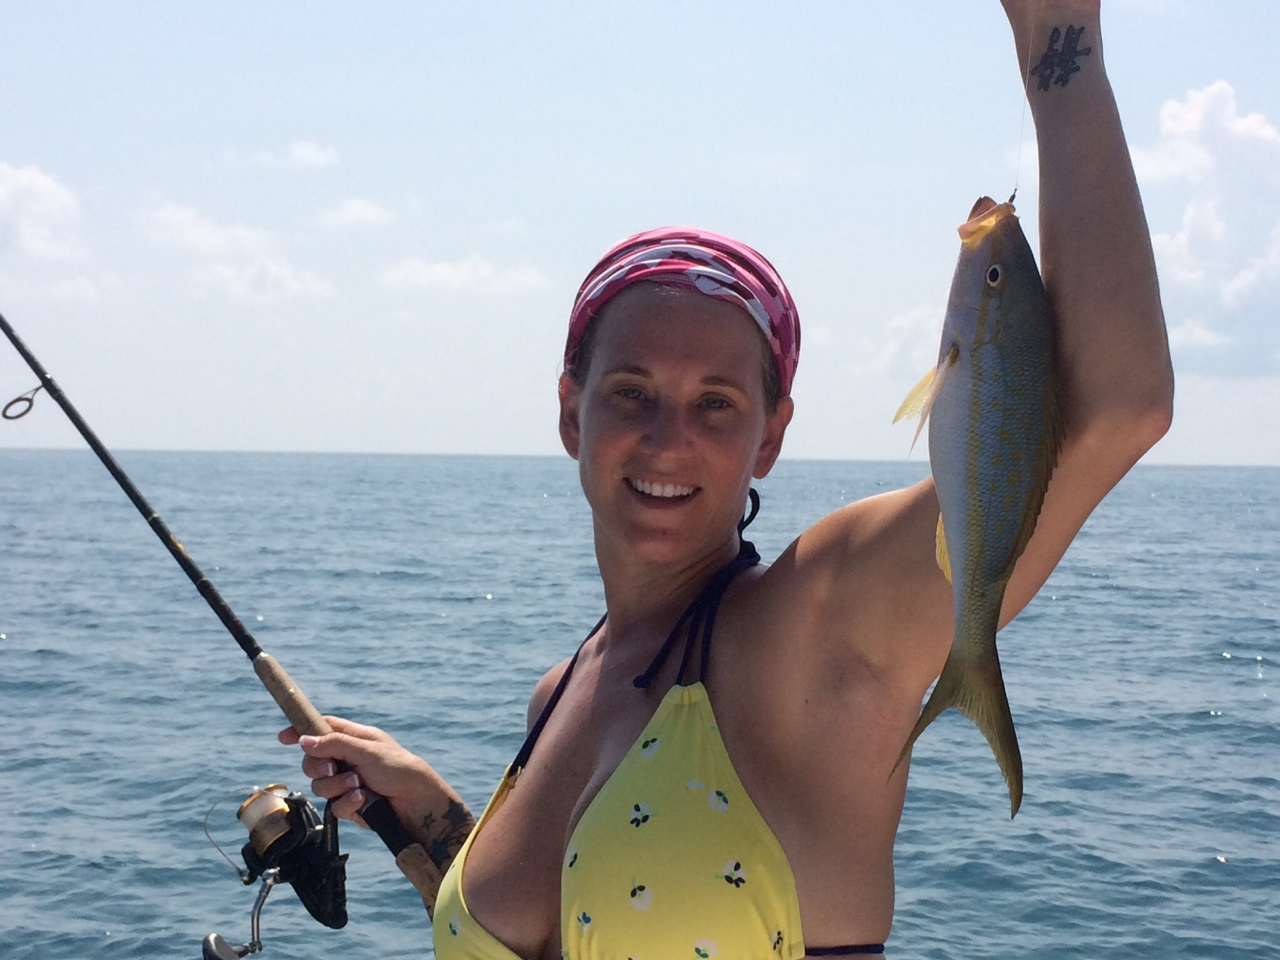 Melissa holding her yellowtail snapper caught off Marathon in the Fl Keys.